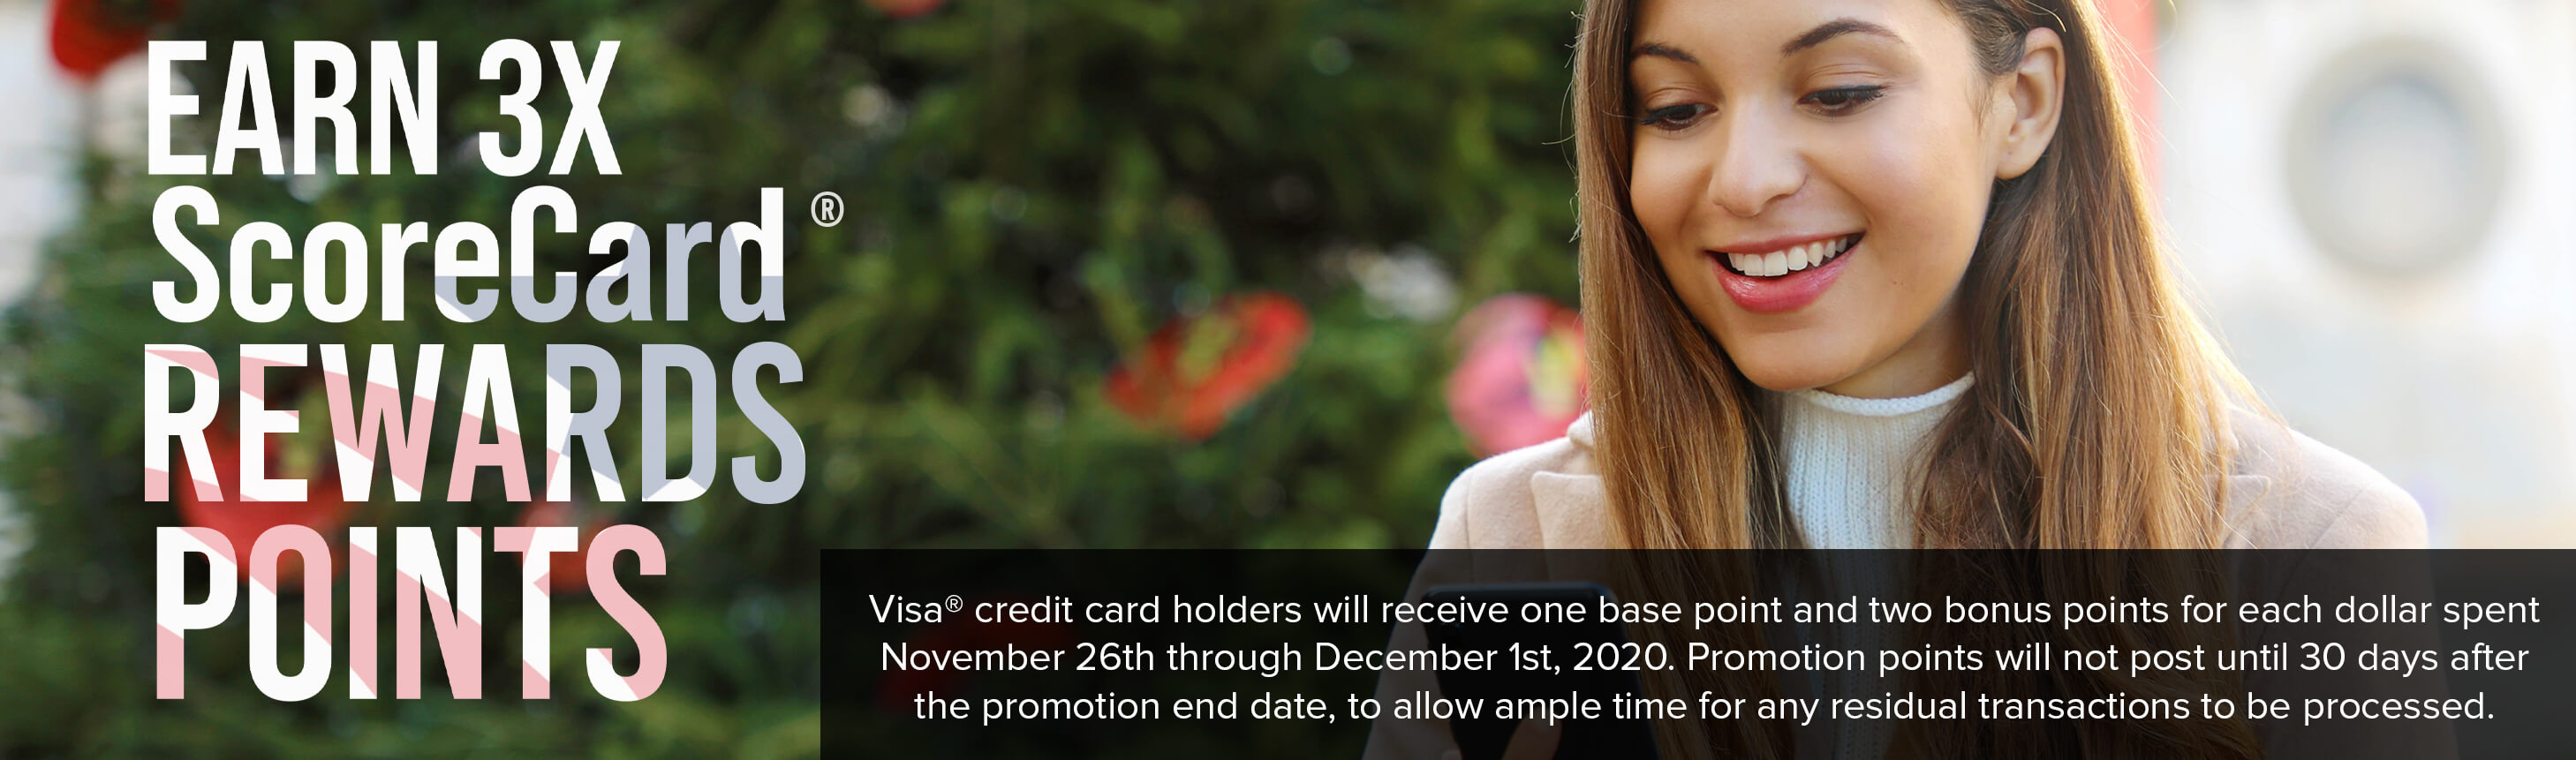 *Visa® credit card holders will receive one base point and two bonus points for each dollar spent November 26th through December 1st, 2020. Promotion points will not post until 30 days after the promotion end date, to allow ample time for any residual transactions to be processed.